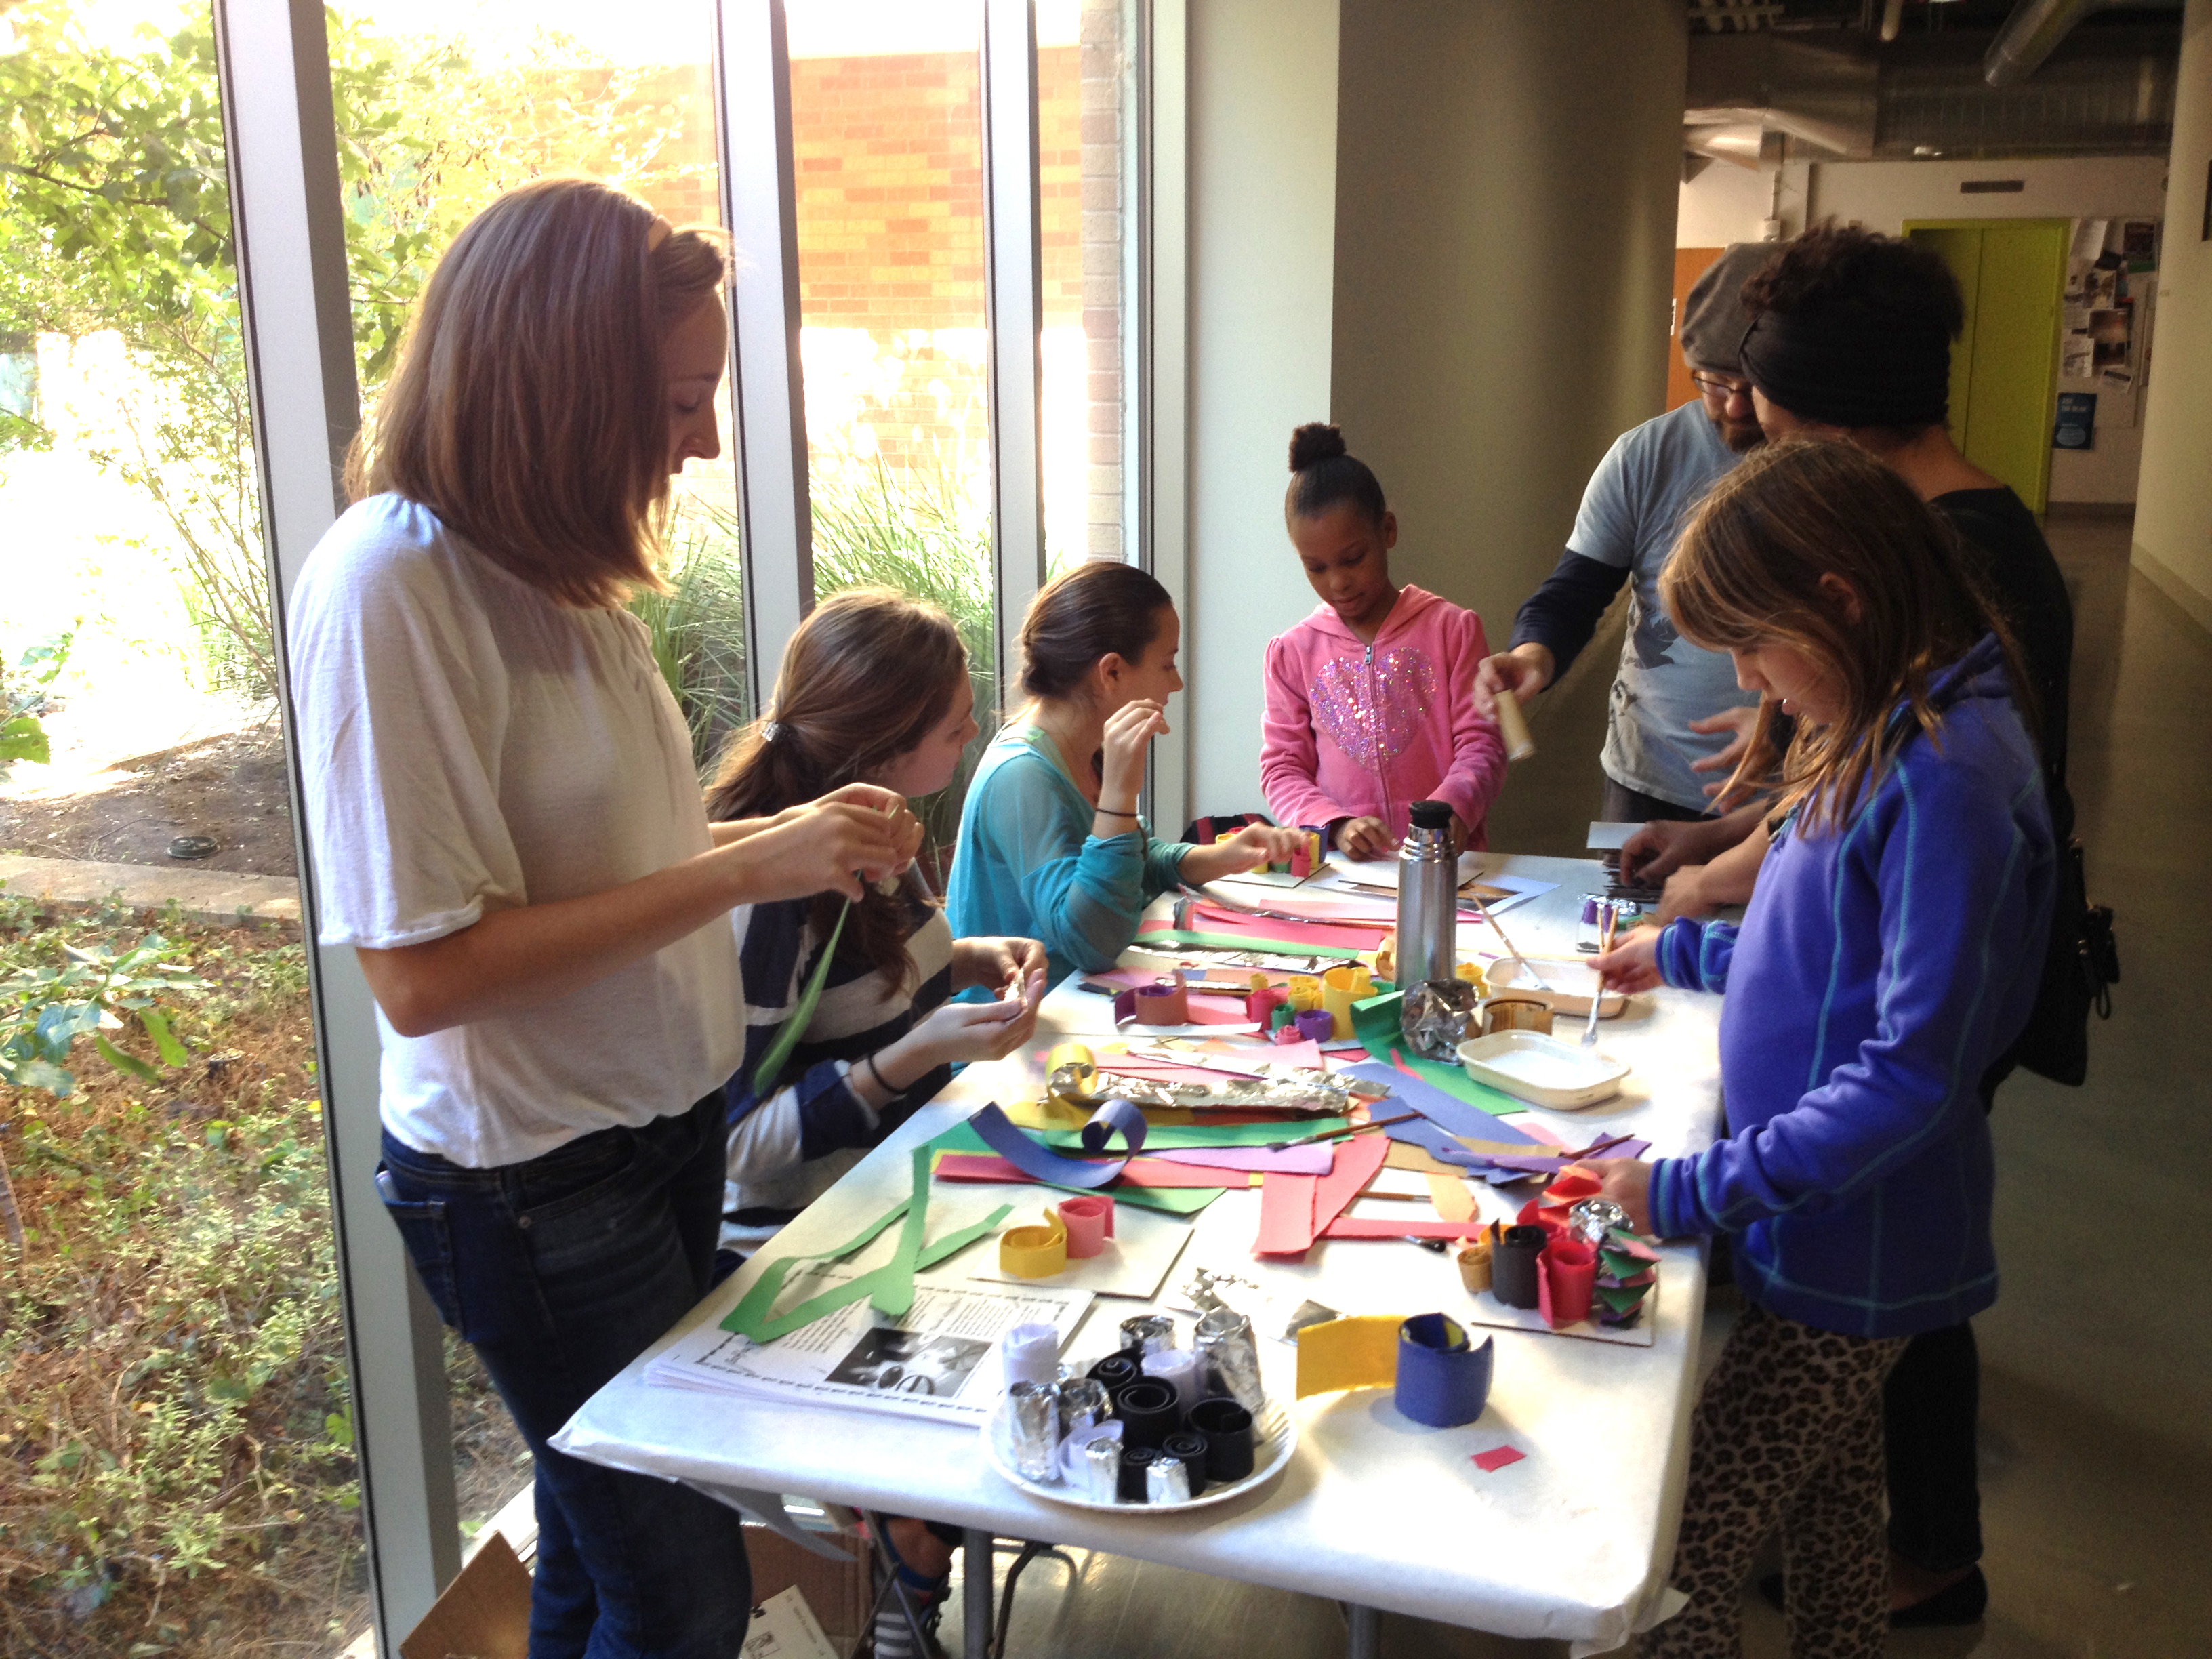 kids around table making art